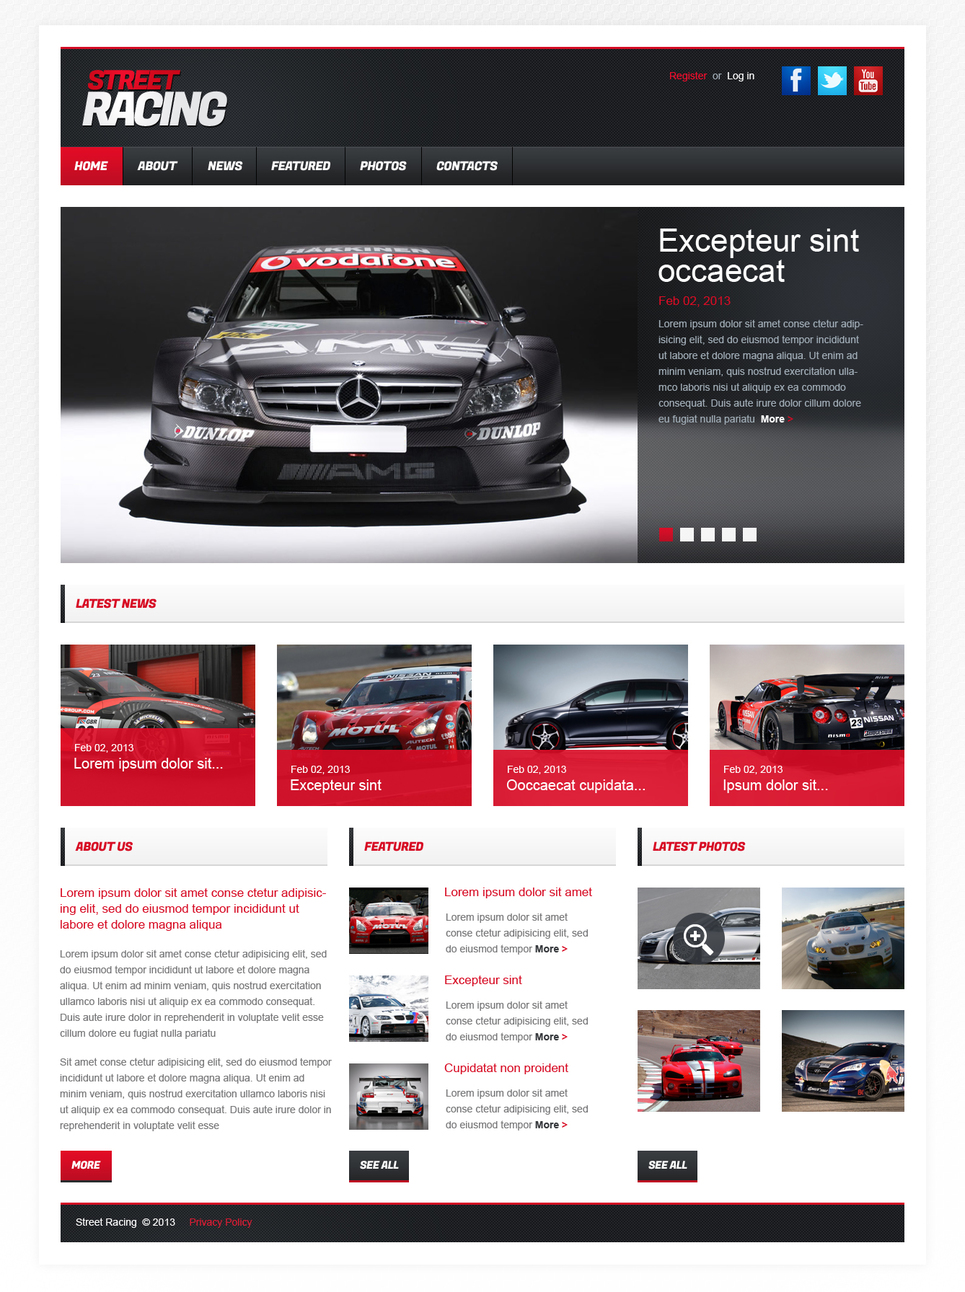 Street Racing Website Template with jQuery Slider - image